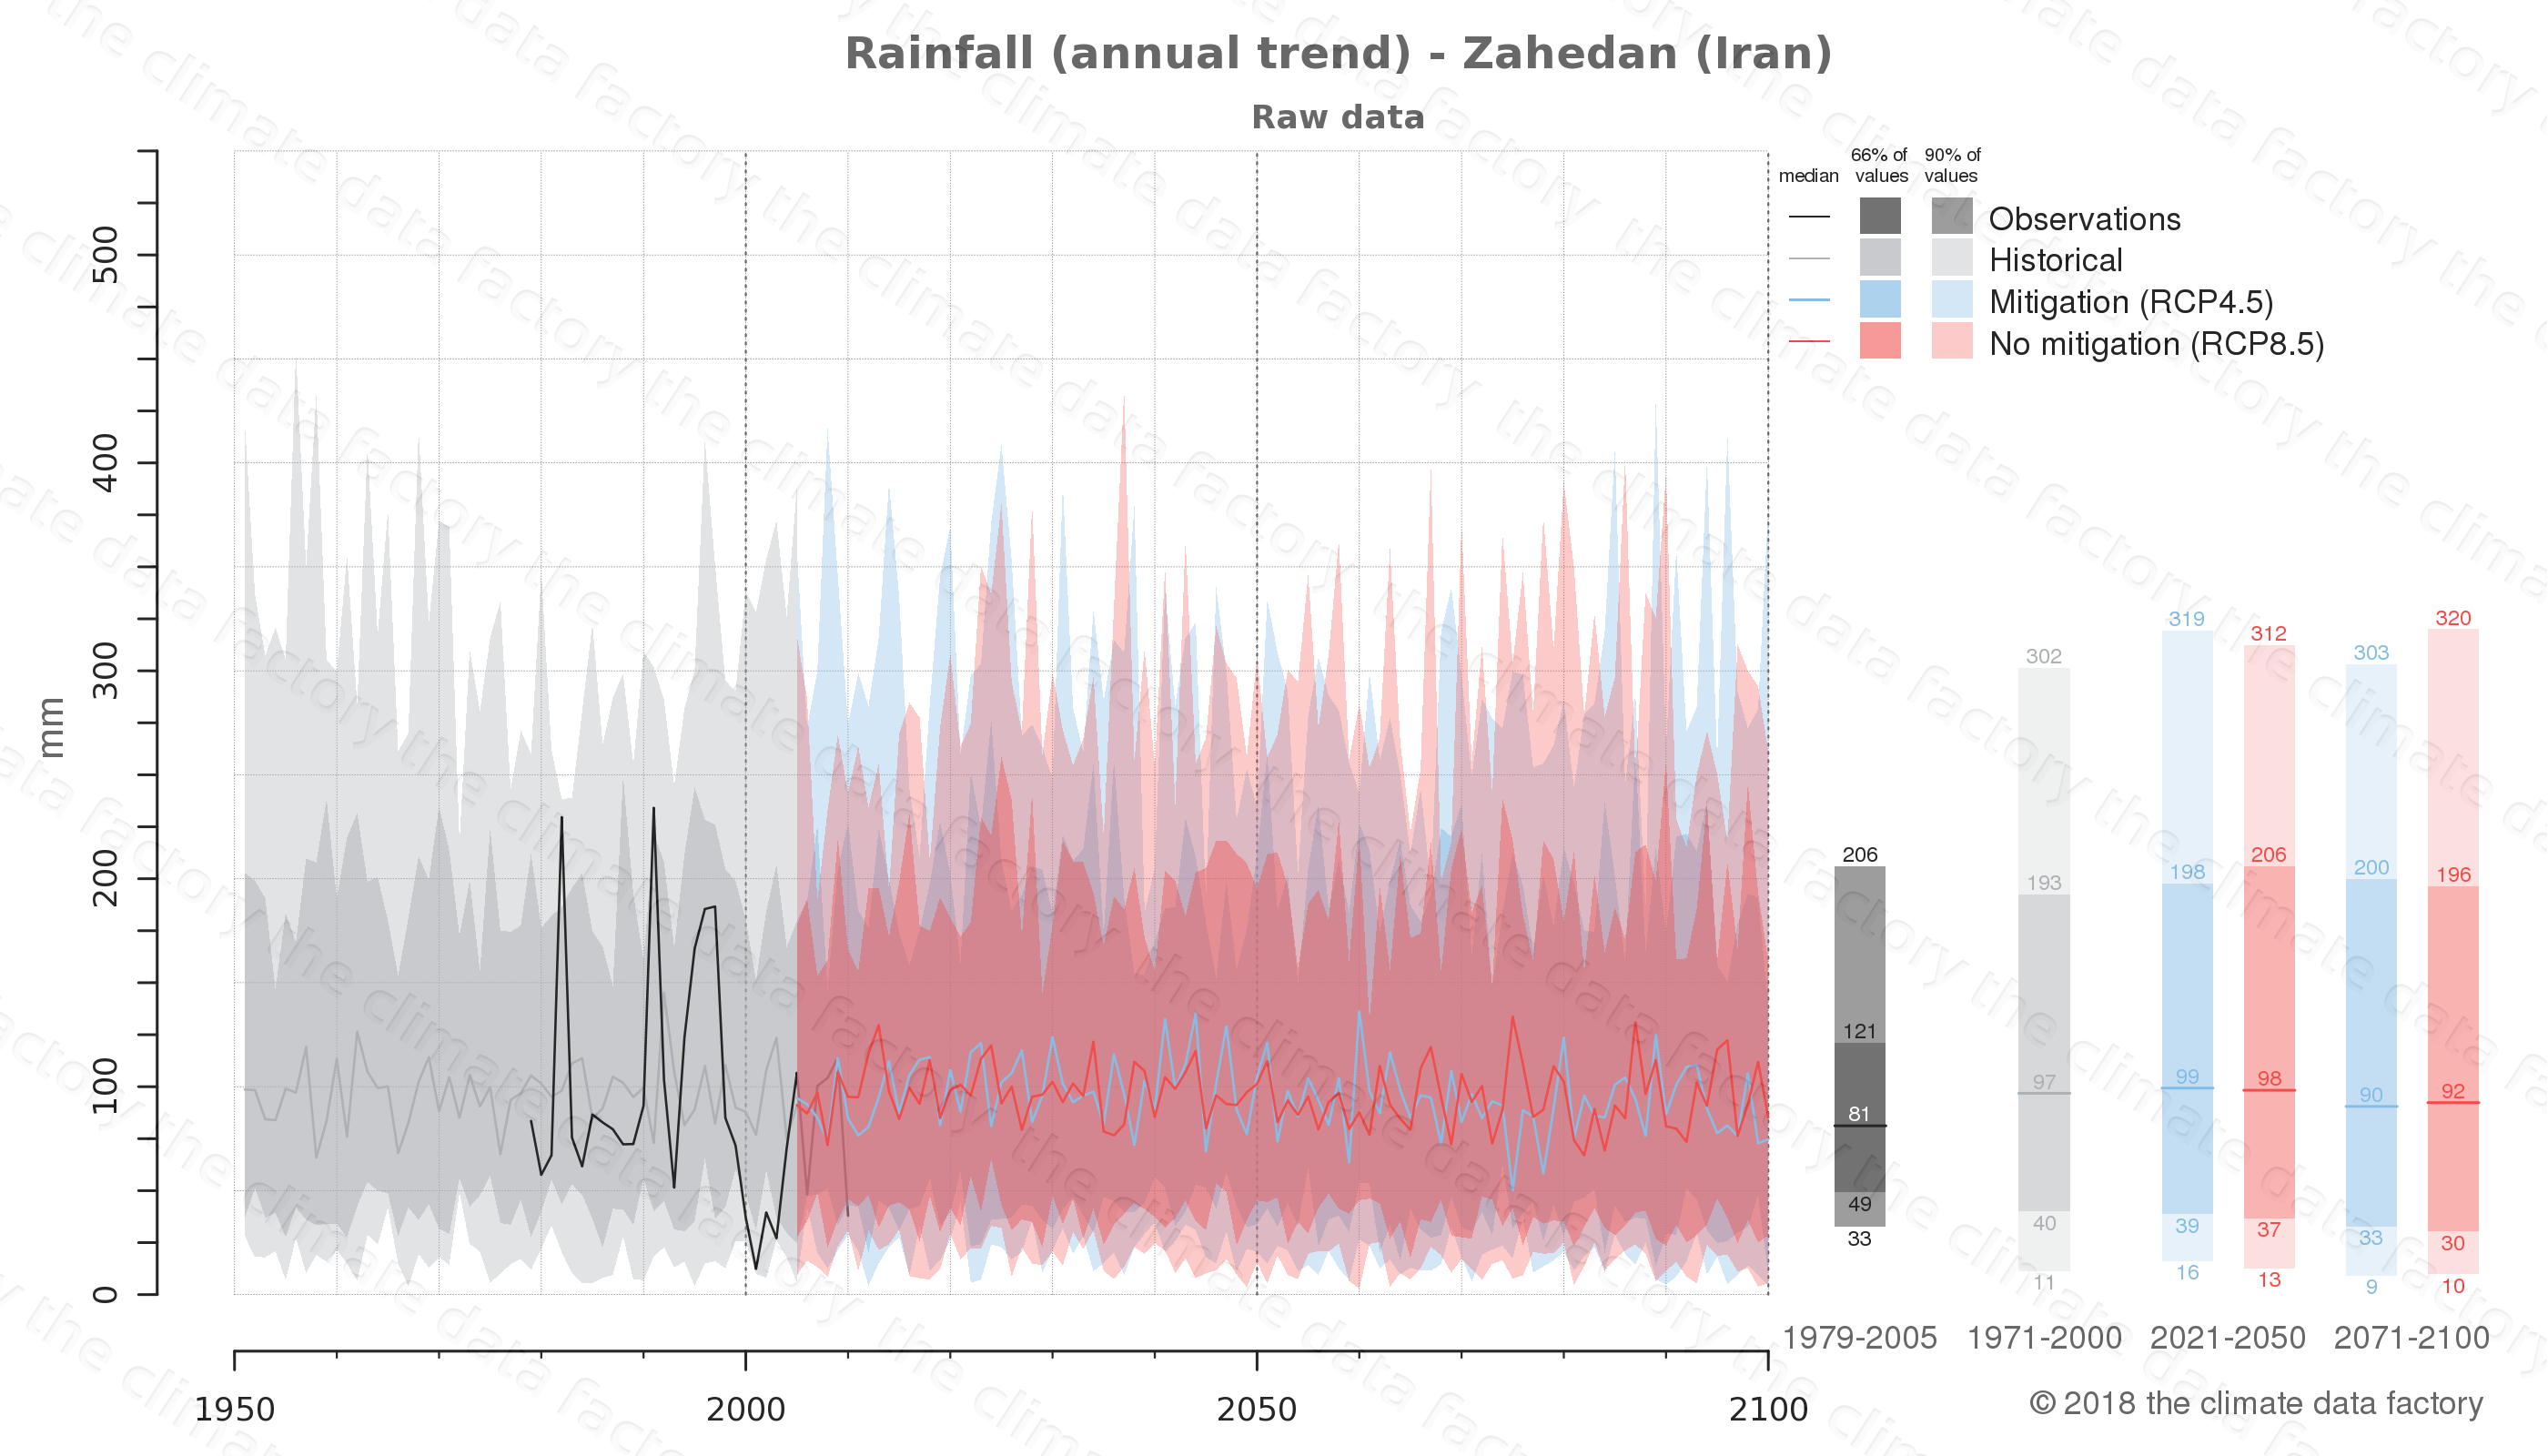 climate change data policy adaptation climate graph city data rainfall zahedan iran